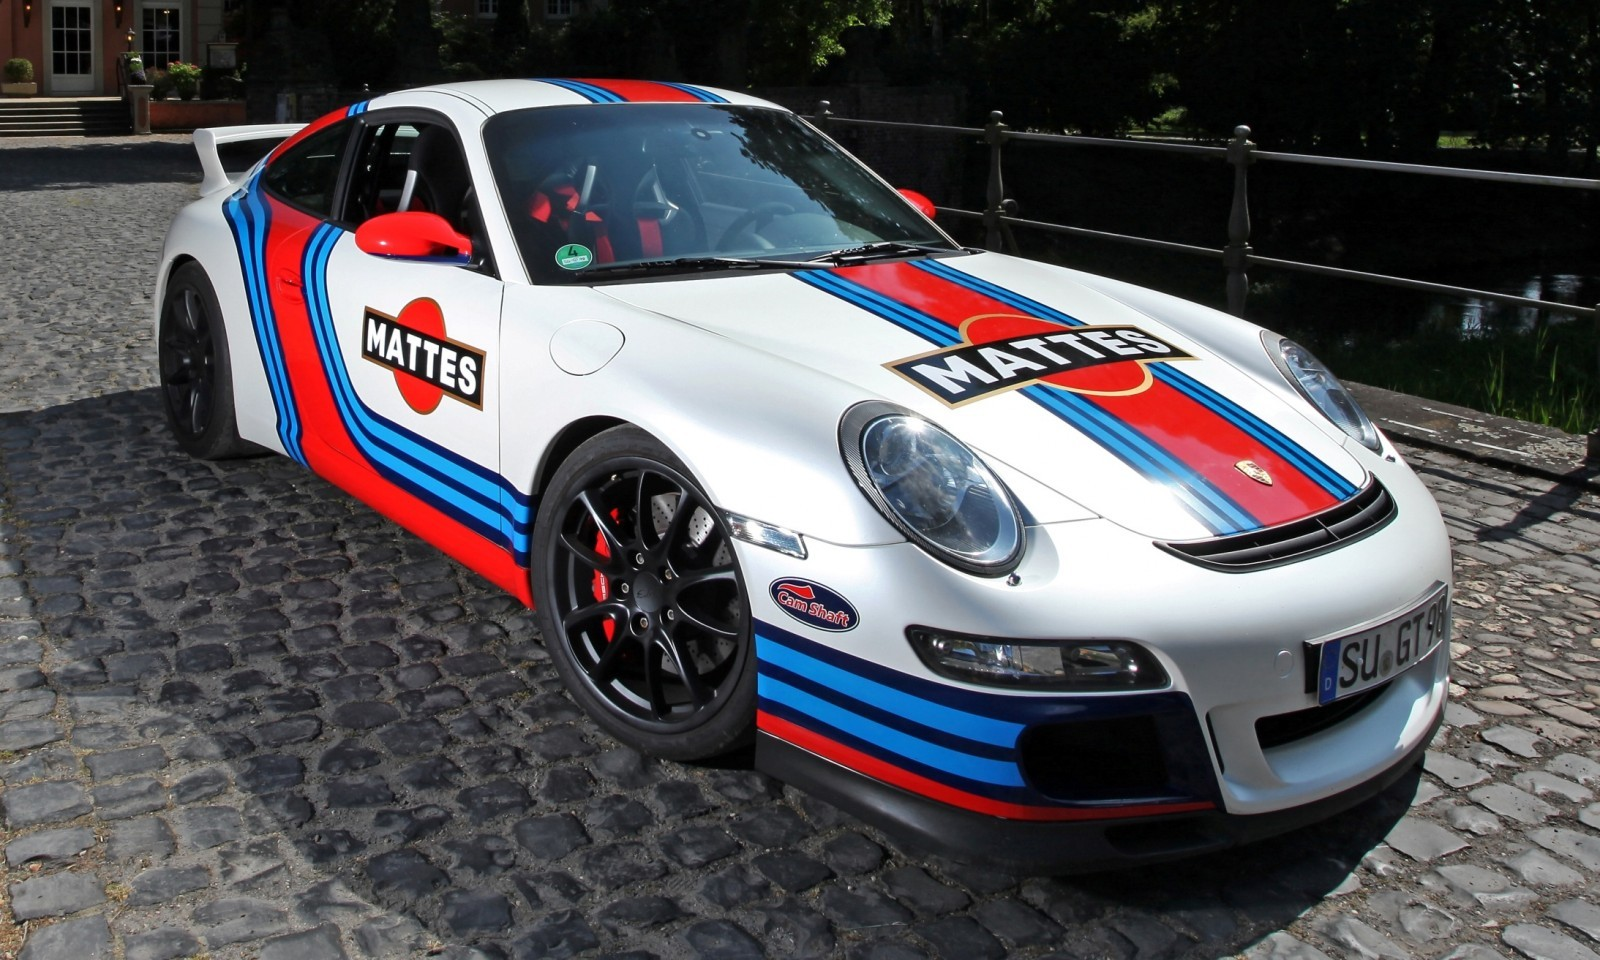 Martini-style Racing Livery by CAM SHAFT for the Porsche 911 GT3 10